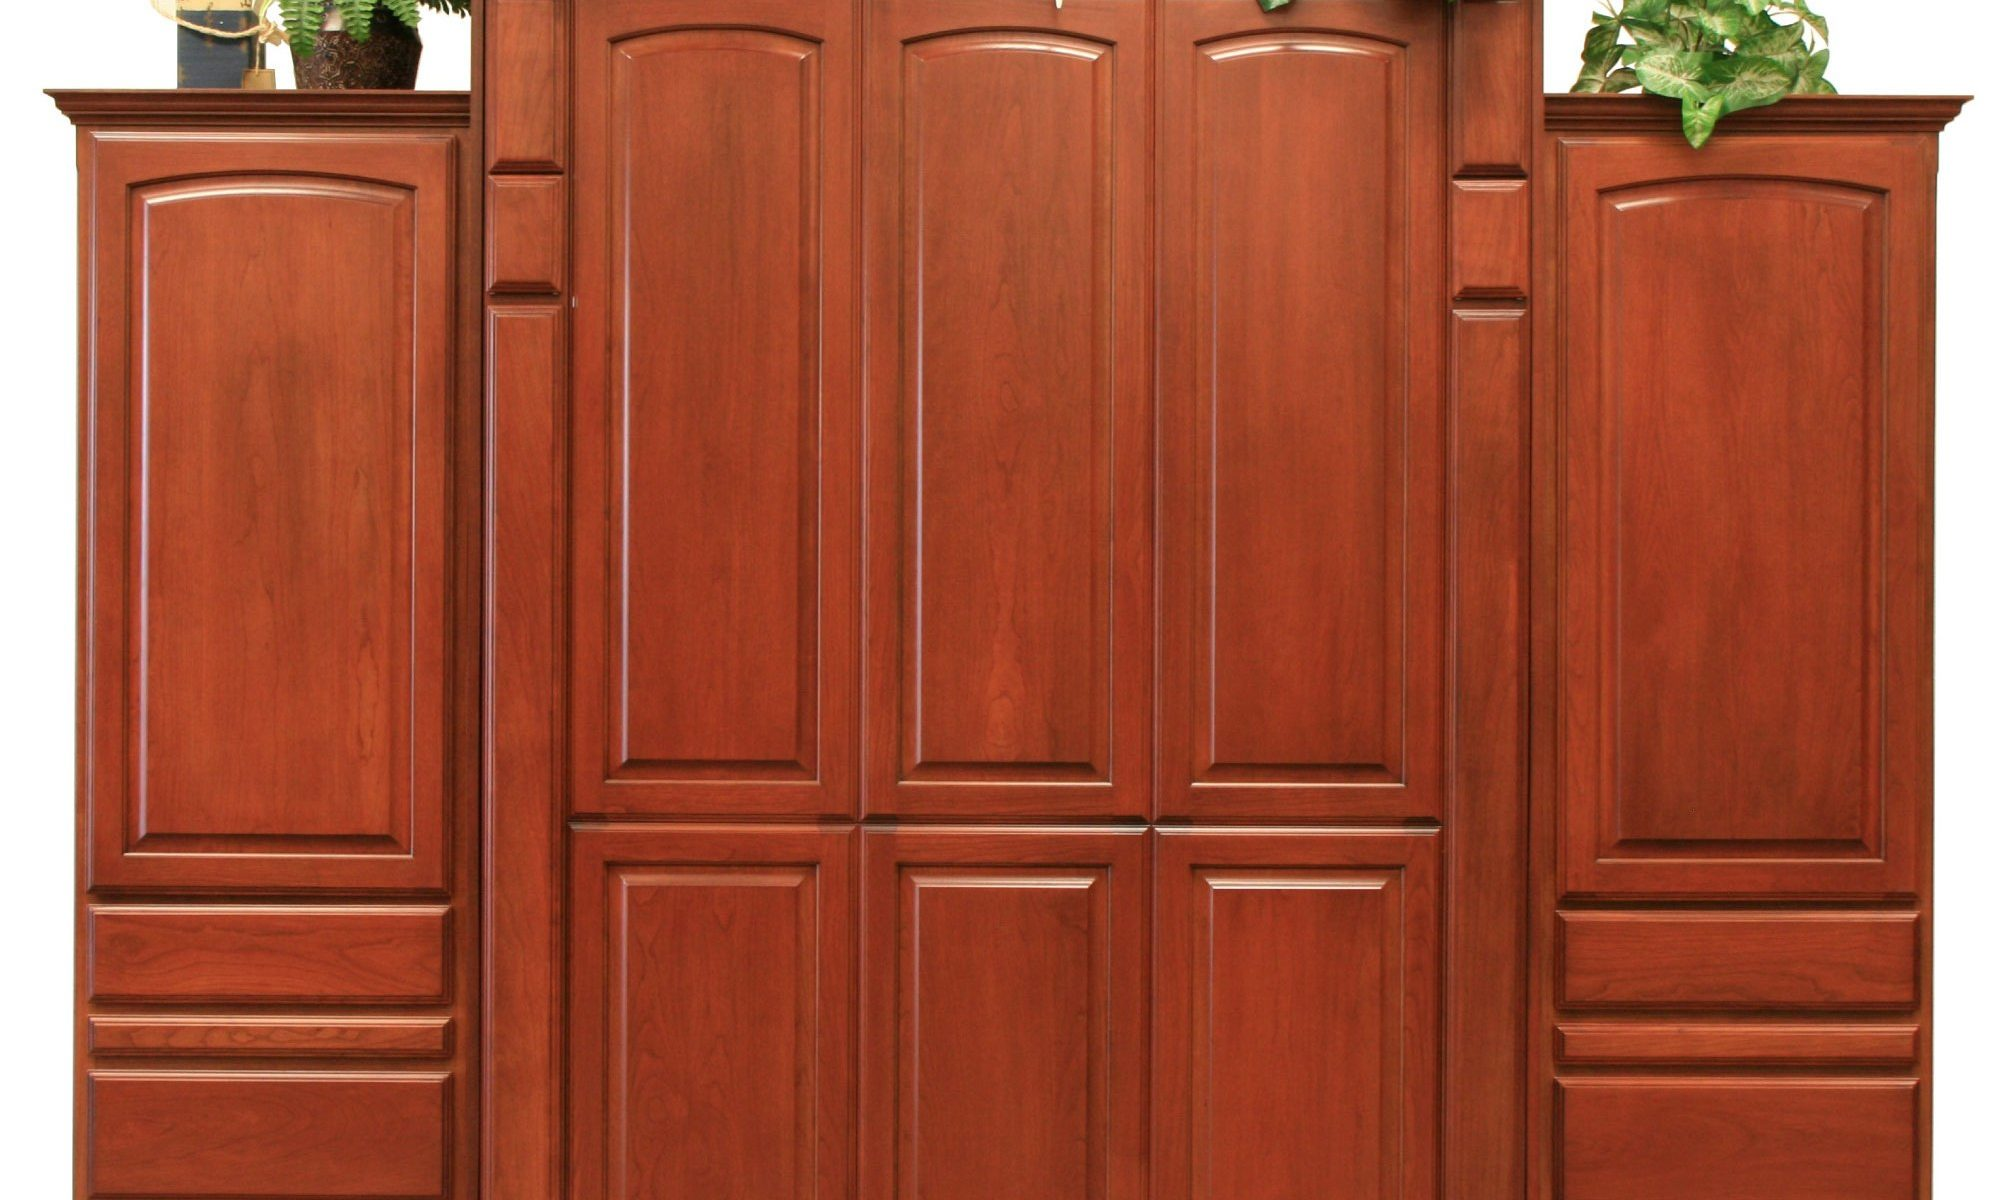 presidential wallbed - Wood Murphy Bed Options In St. George